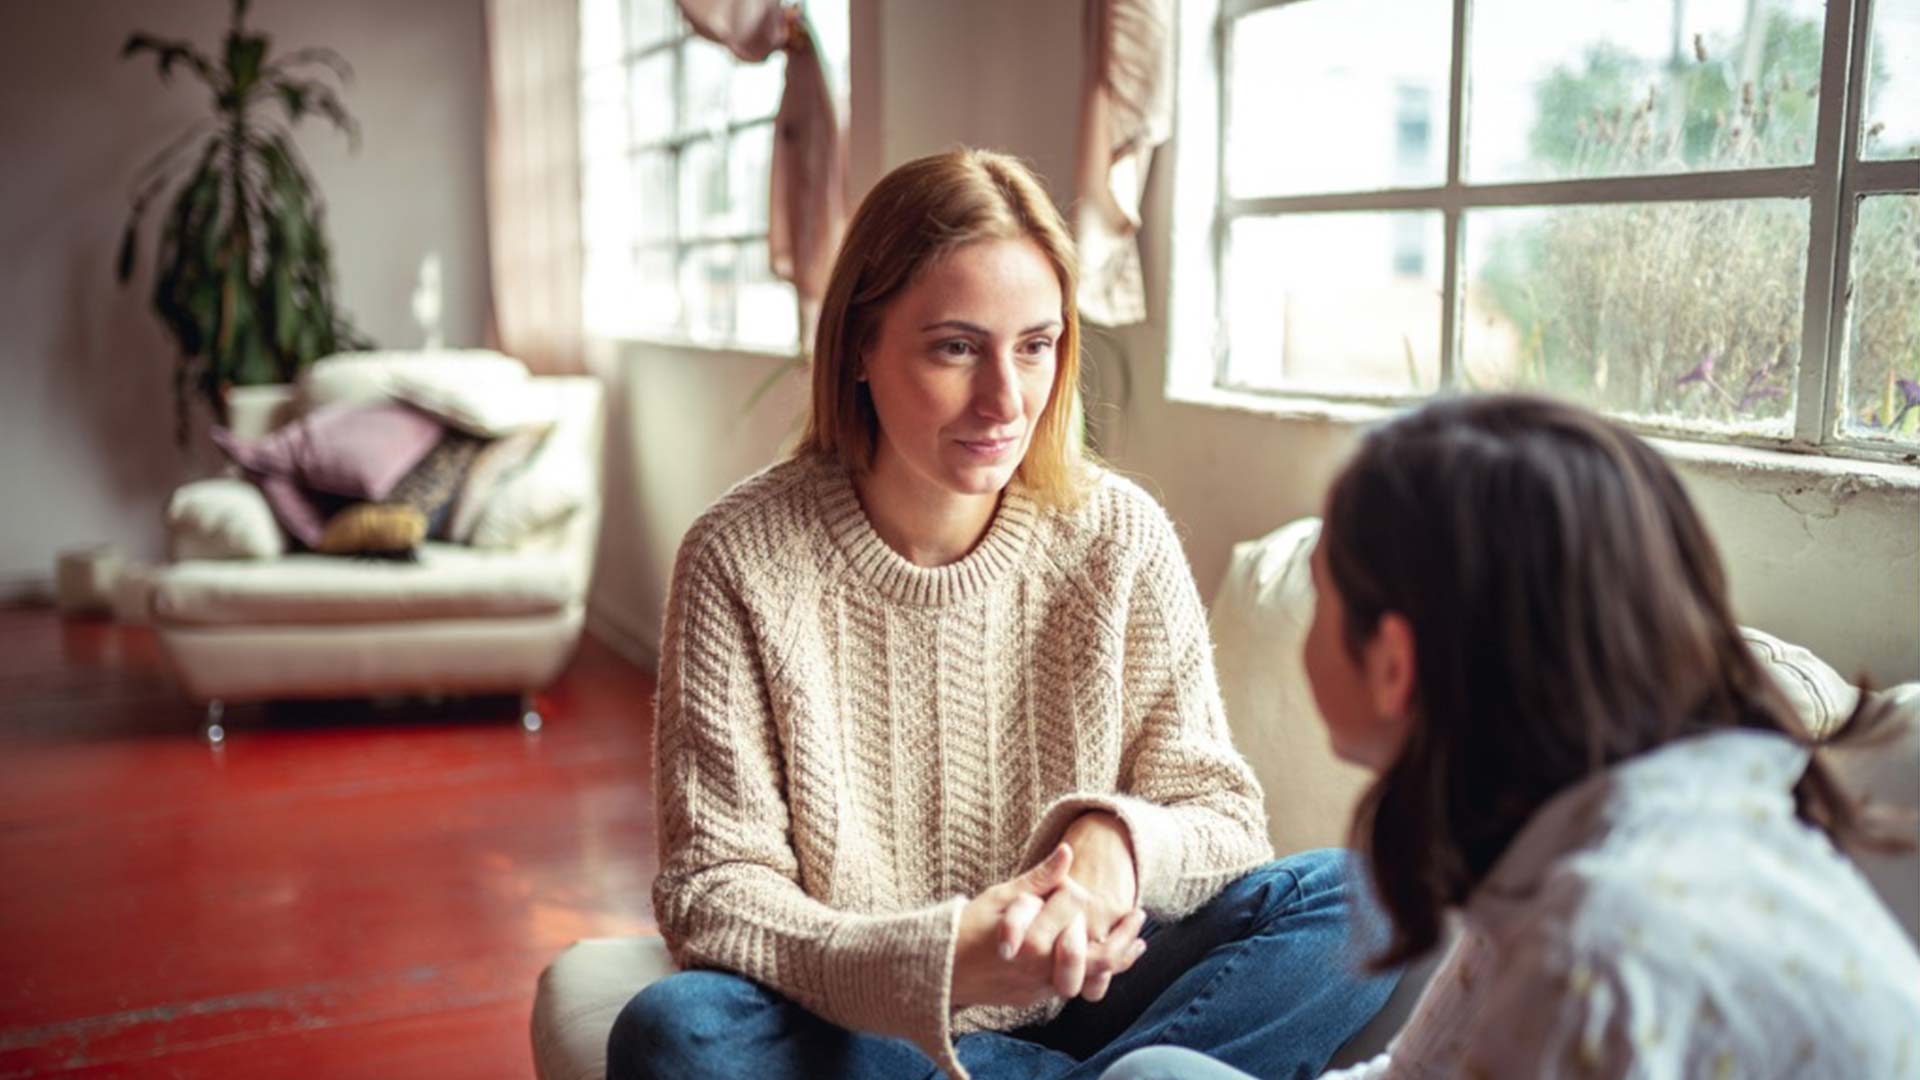 Helping teens cope with COVID-19 social distancing